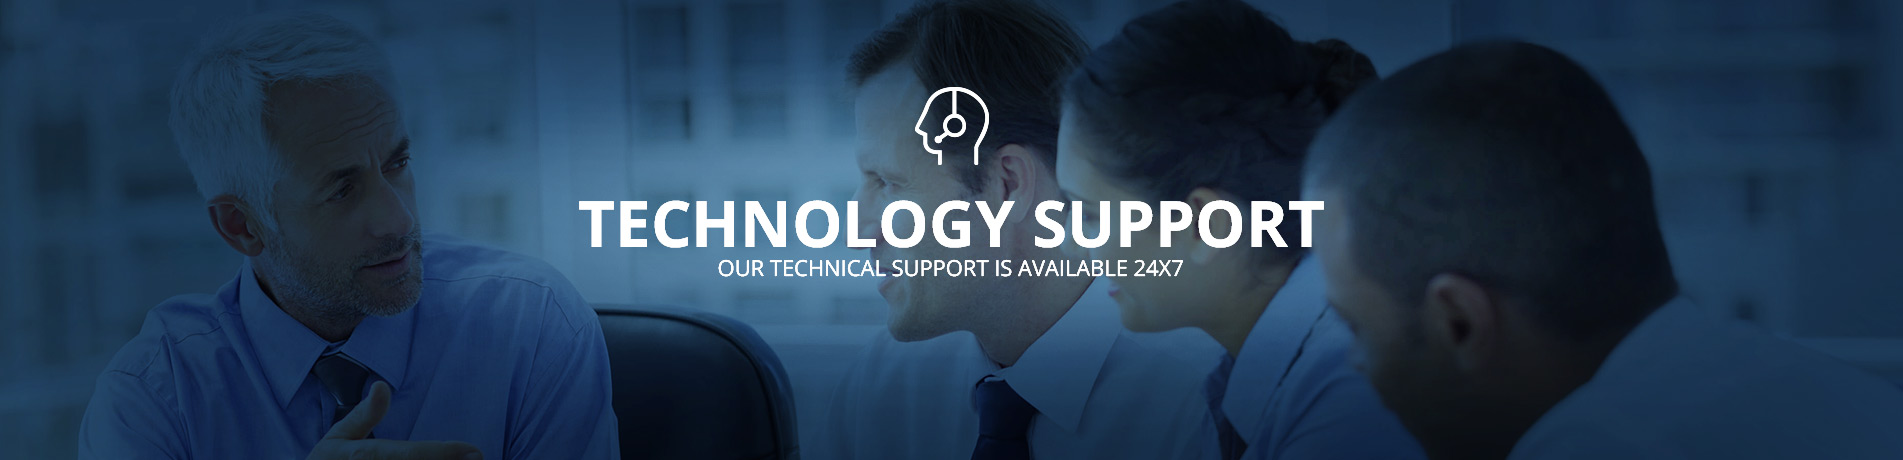 Bunsun Technology Support